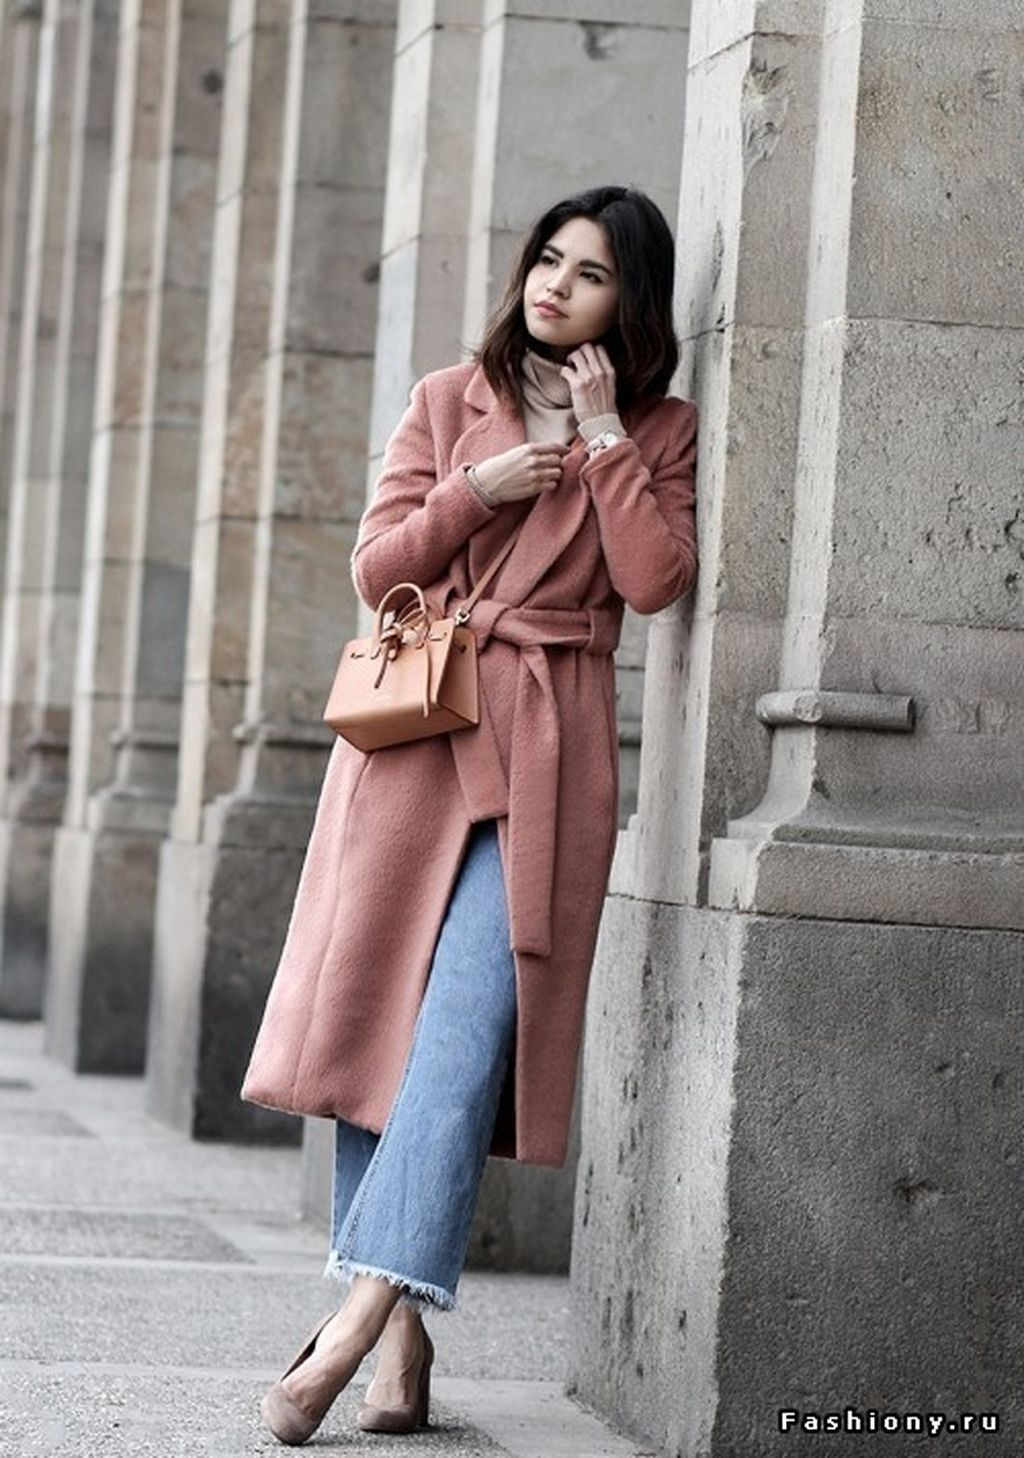 charming valentines date outfits ideas for girls torn jeans